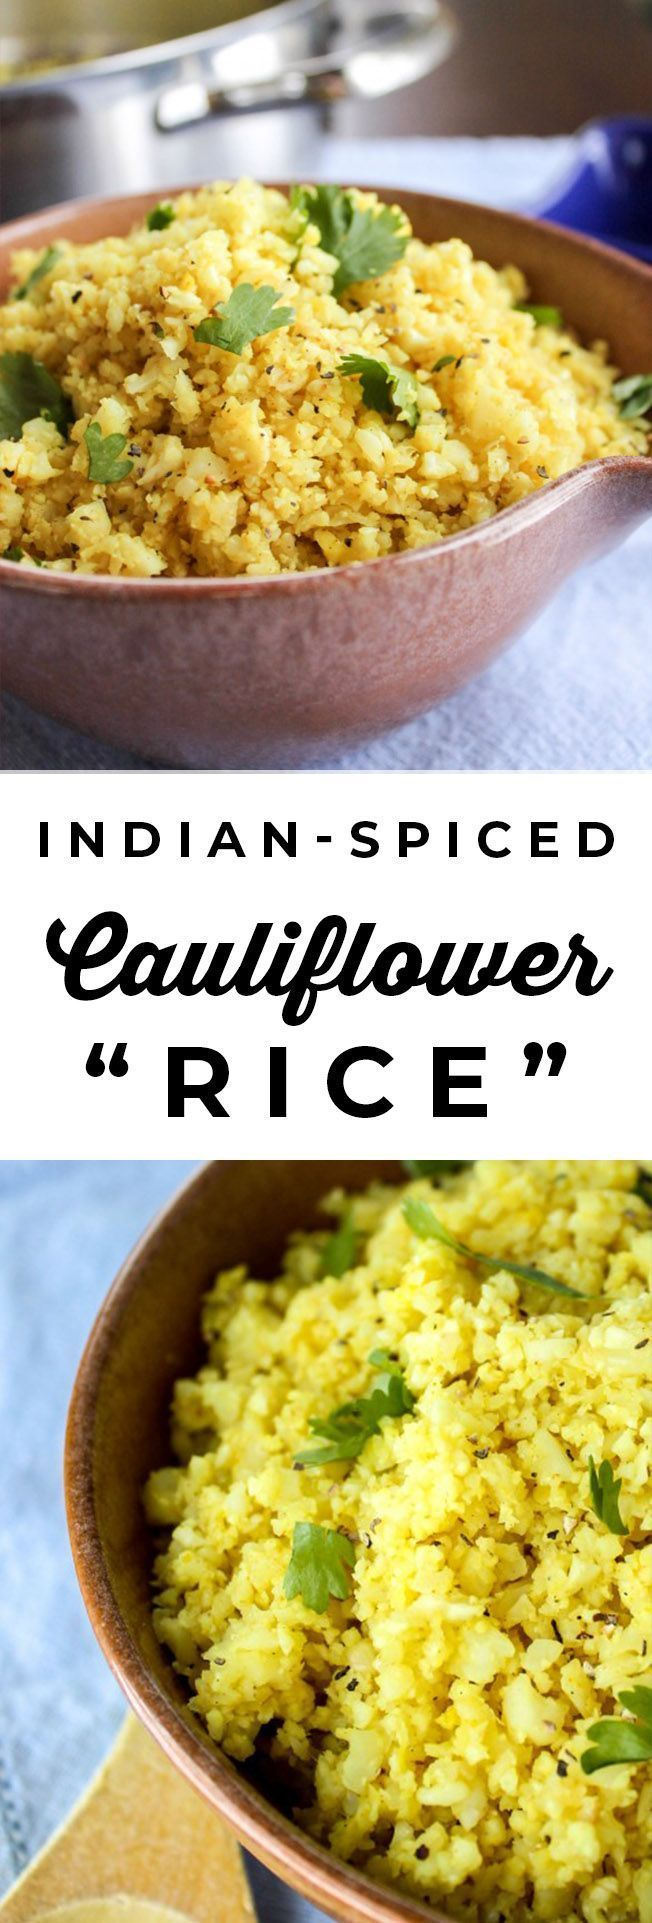 "Photo of Indian flavored cauliflower ""Rice"" from The Food Charlatan. Cauliflower rice is approx."